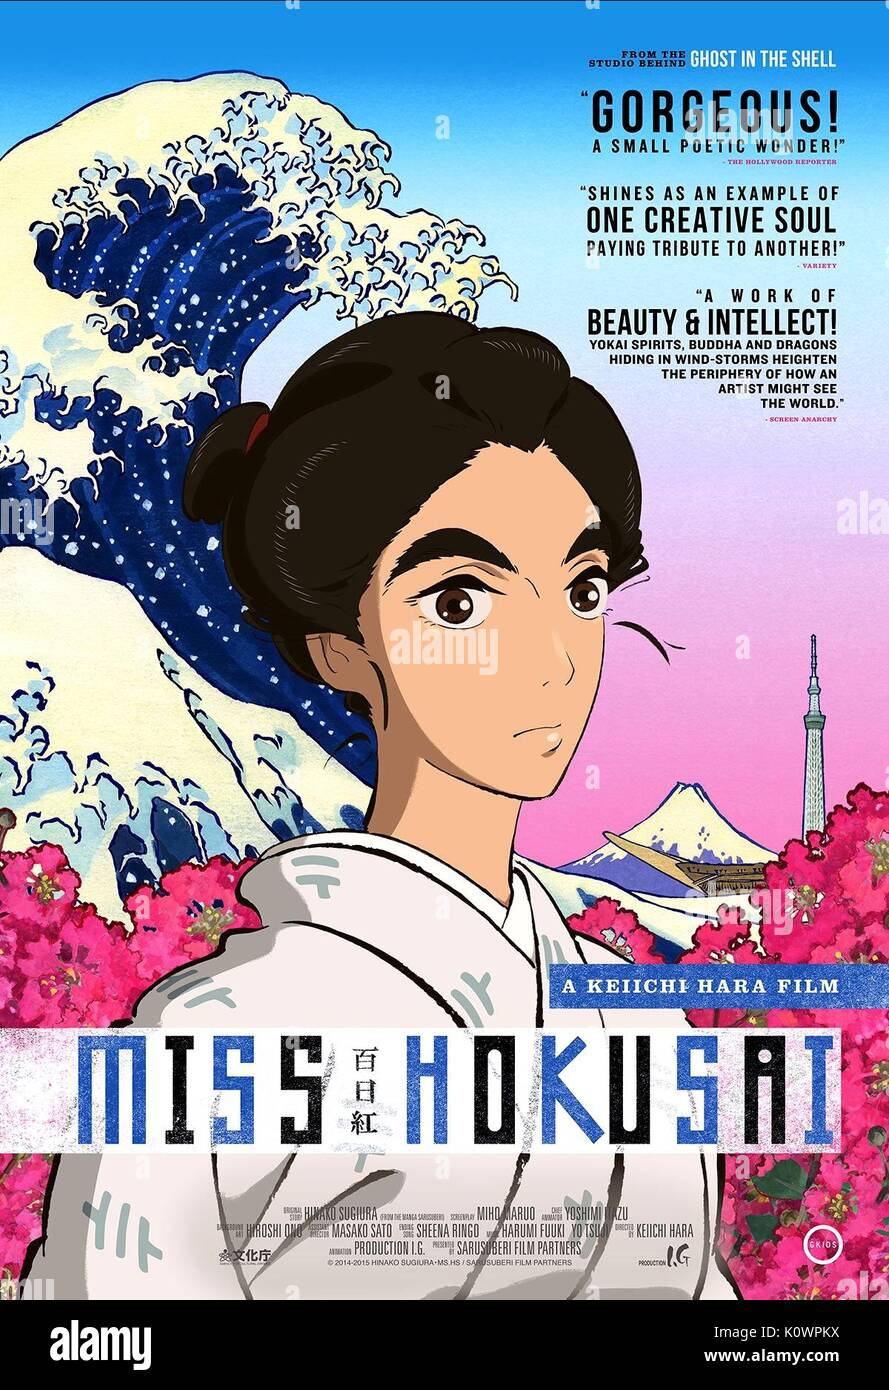 MOVIE POSTER MISS HOKUSAI; SARUSUBERI: MISS HOKUSAI (2015) - Stock Image